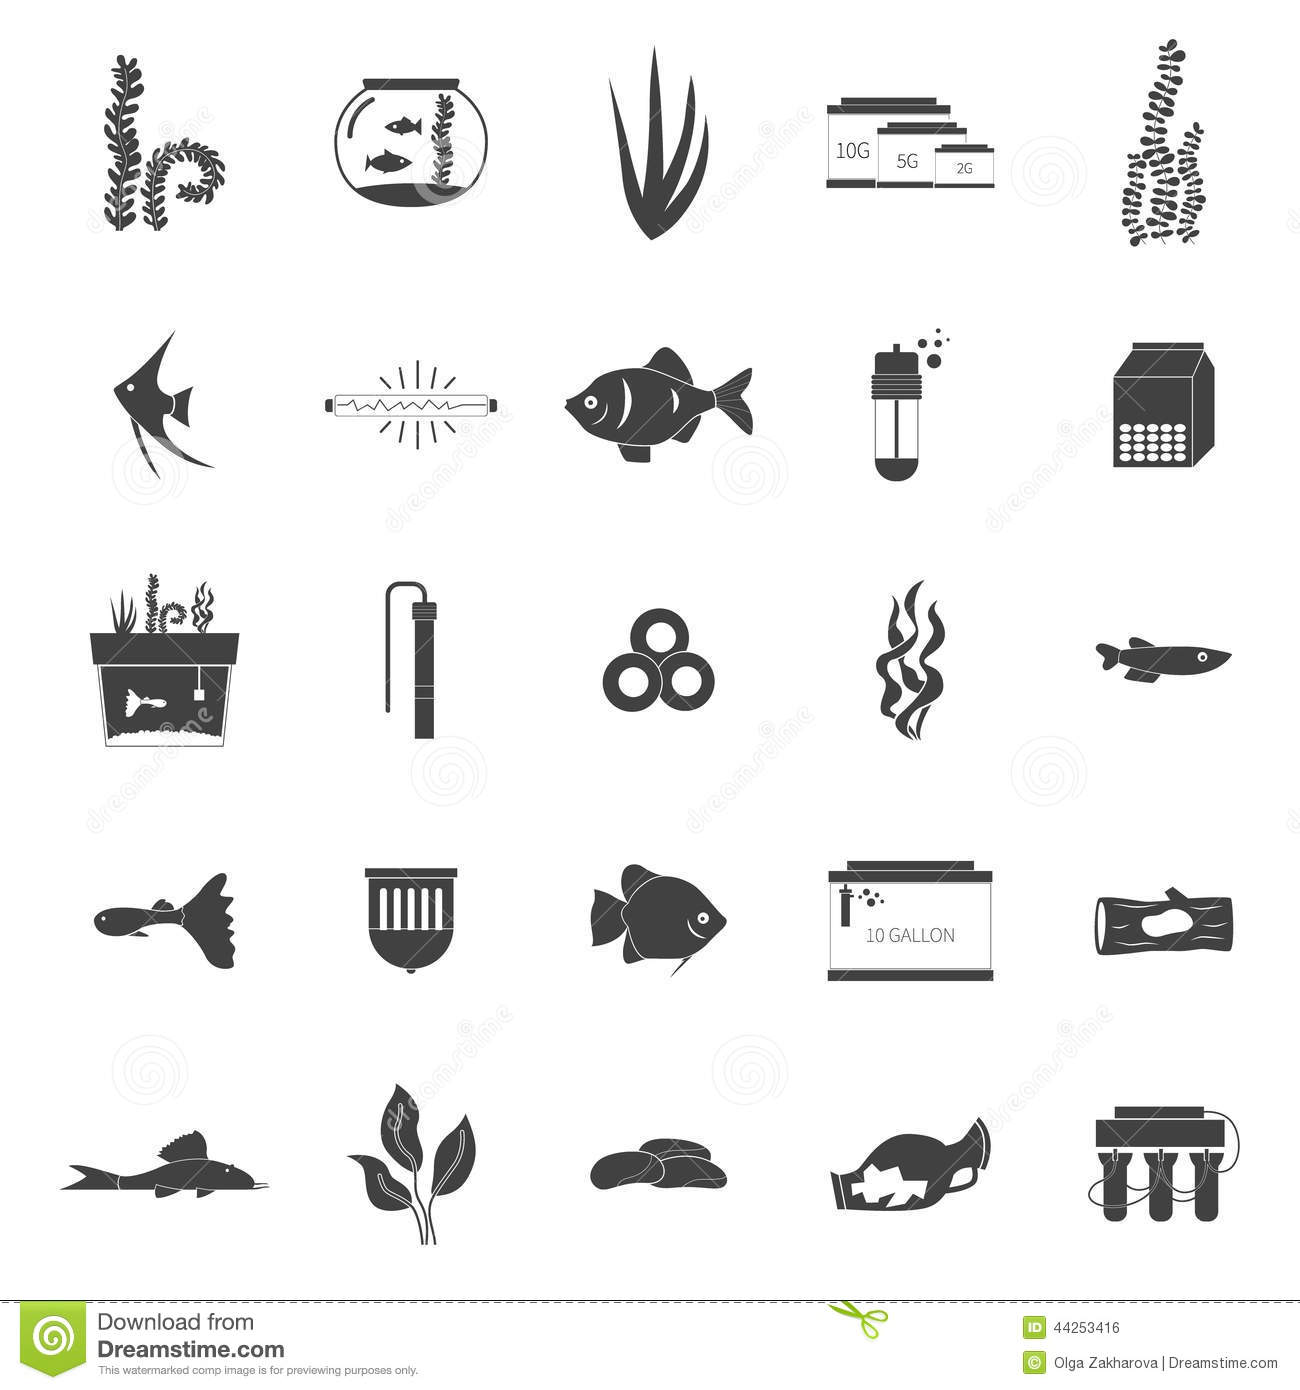 Aquarium Icons Stock Vector - Image: 44253416